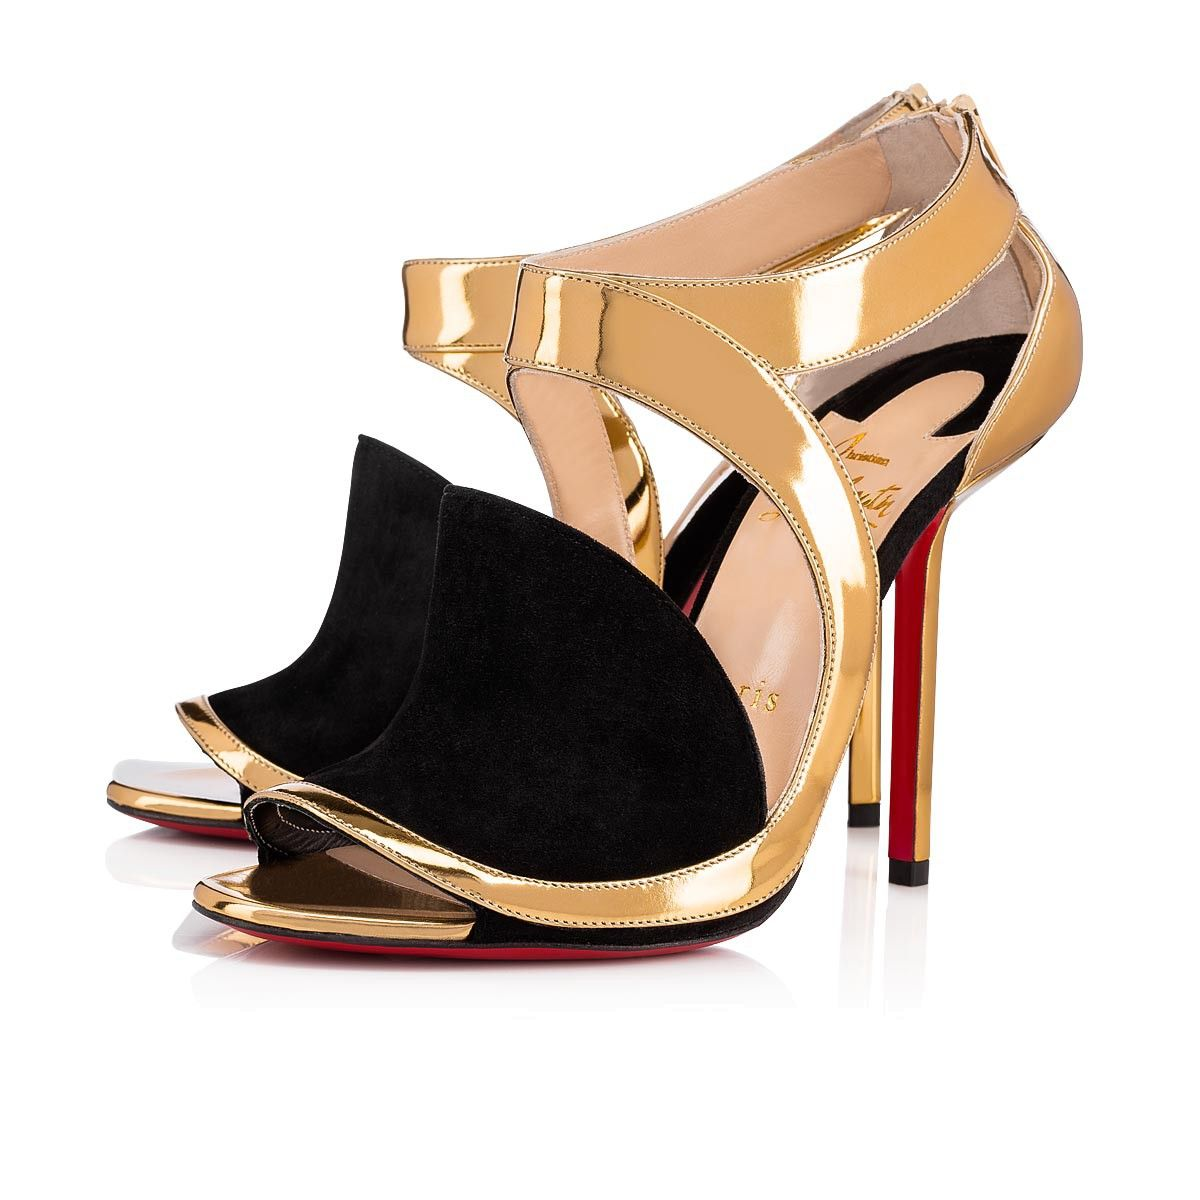 new products 1cbee bf4ac Rotonda 100 Gold/Black Suede - Women Shoes - Christian ...